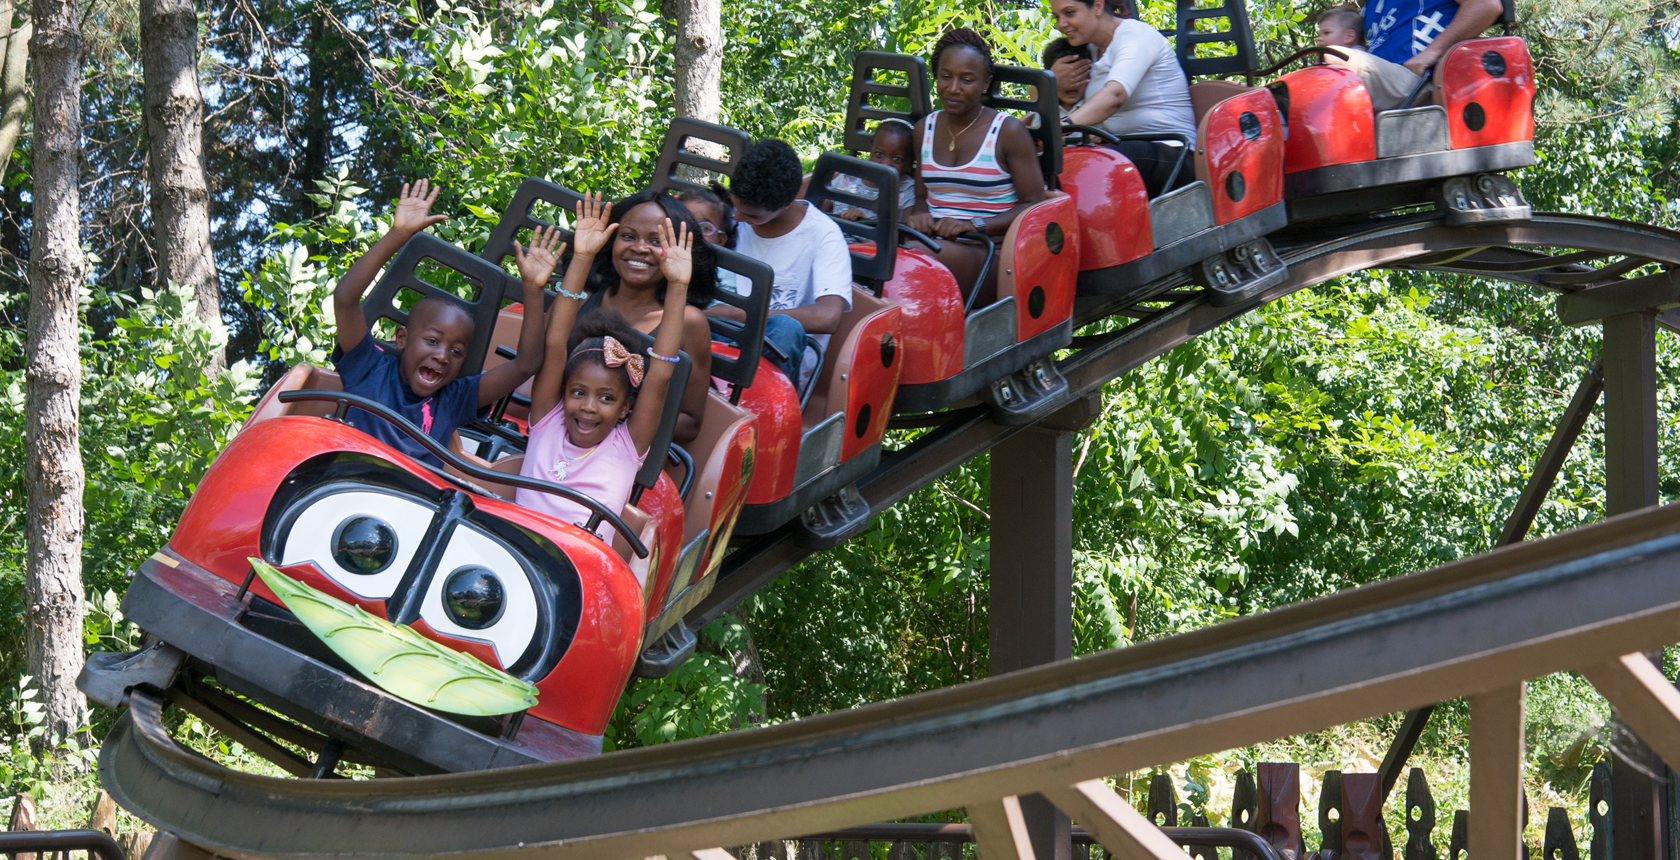 We offer rides for the entire family - Calling all thrill Seekers! - Marineland